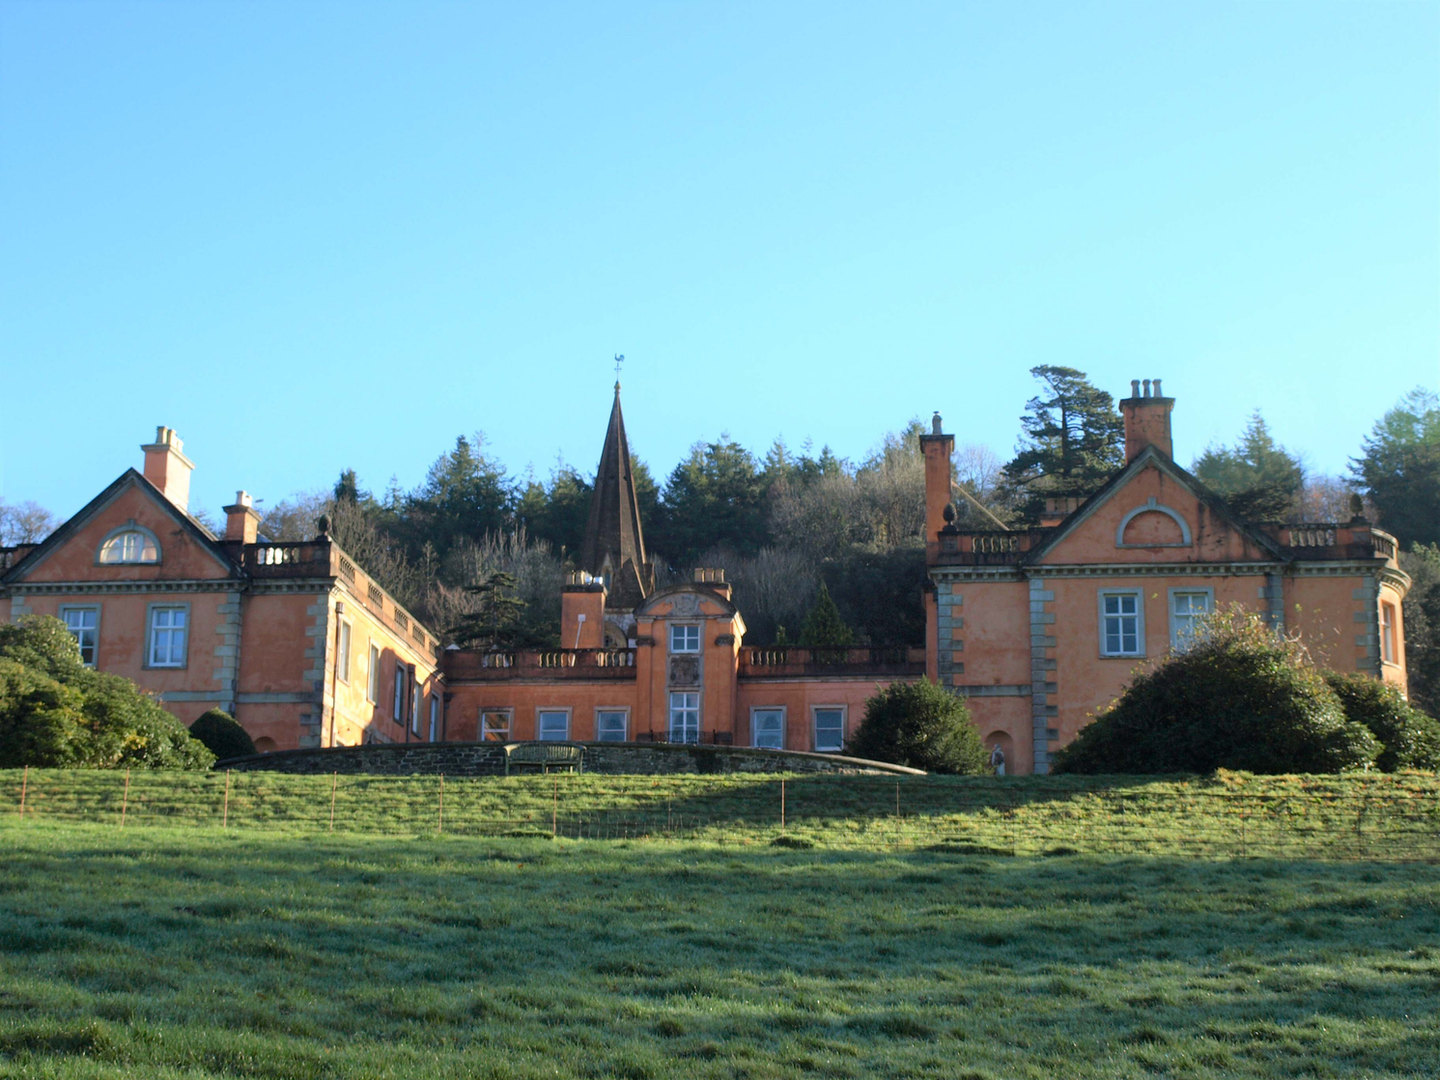 Maristow House from road